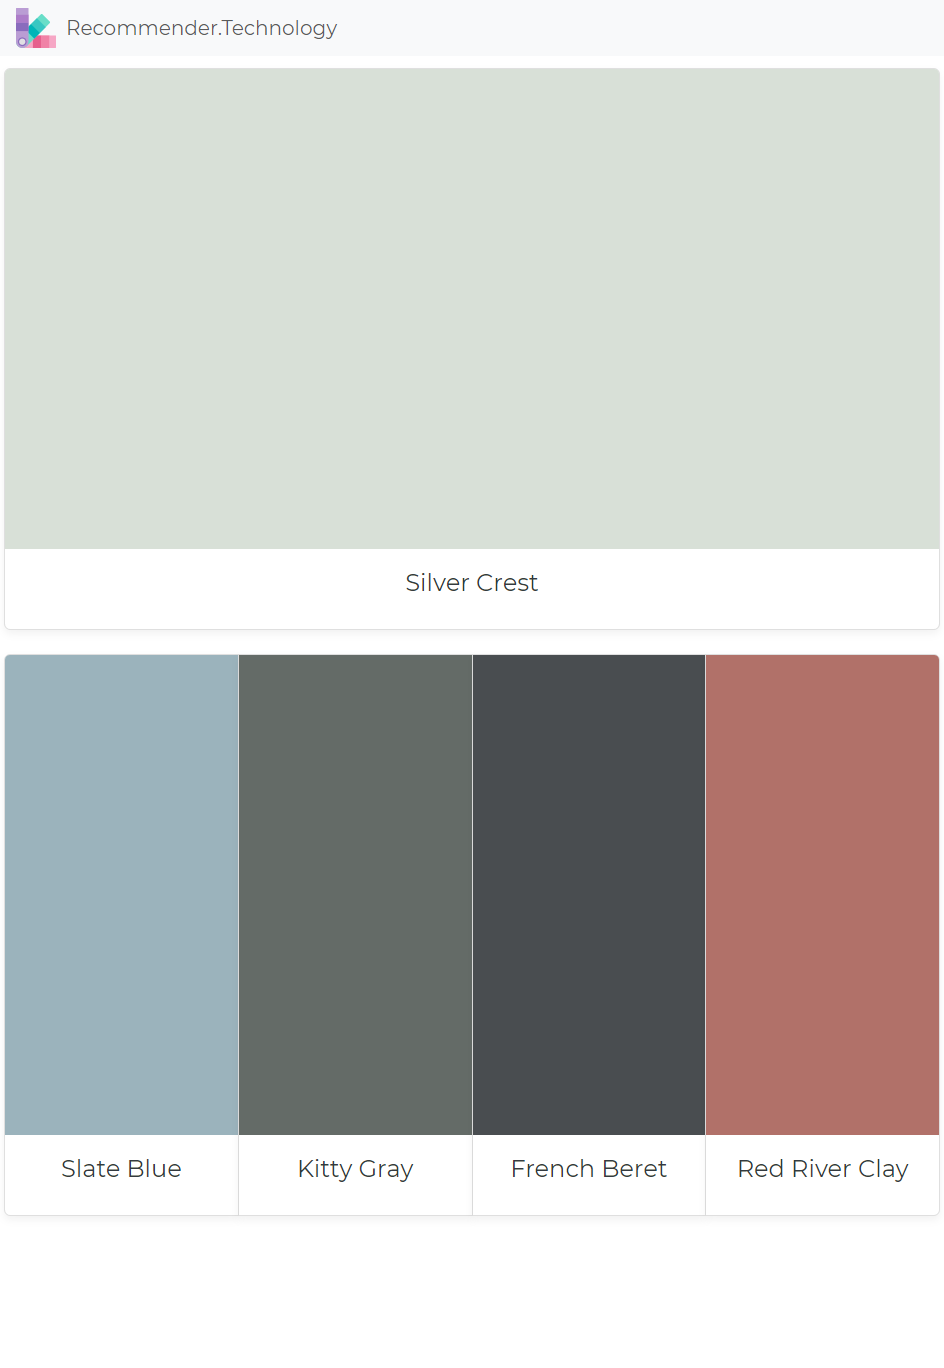 Silver Crest Slate Blue Kitty Gray French Beret Red River Clay Red Paint Colors Paint Colors Benjamin Moore Exterior House Colors